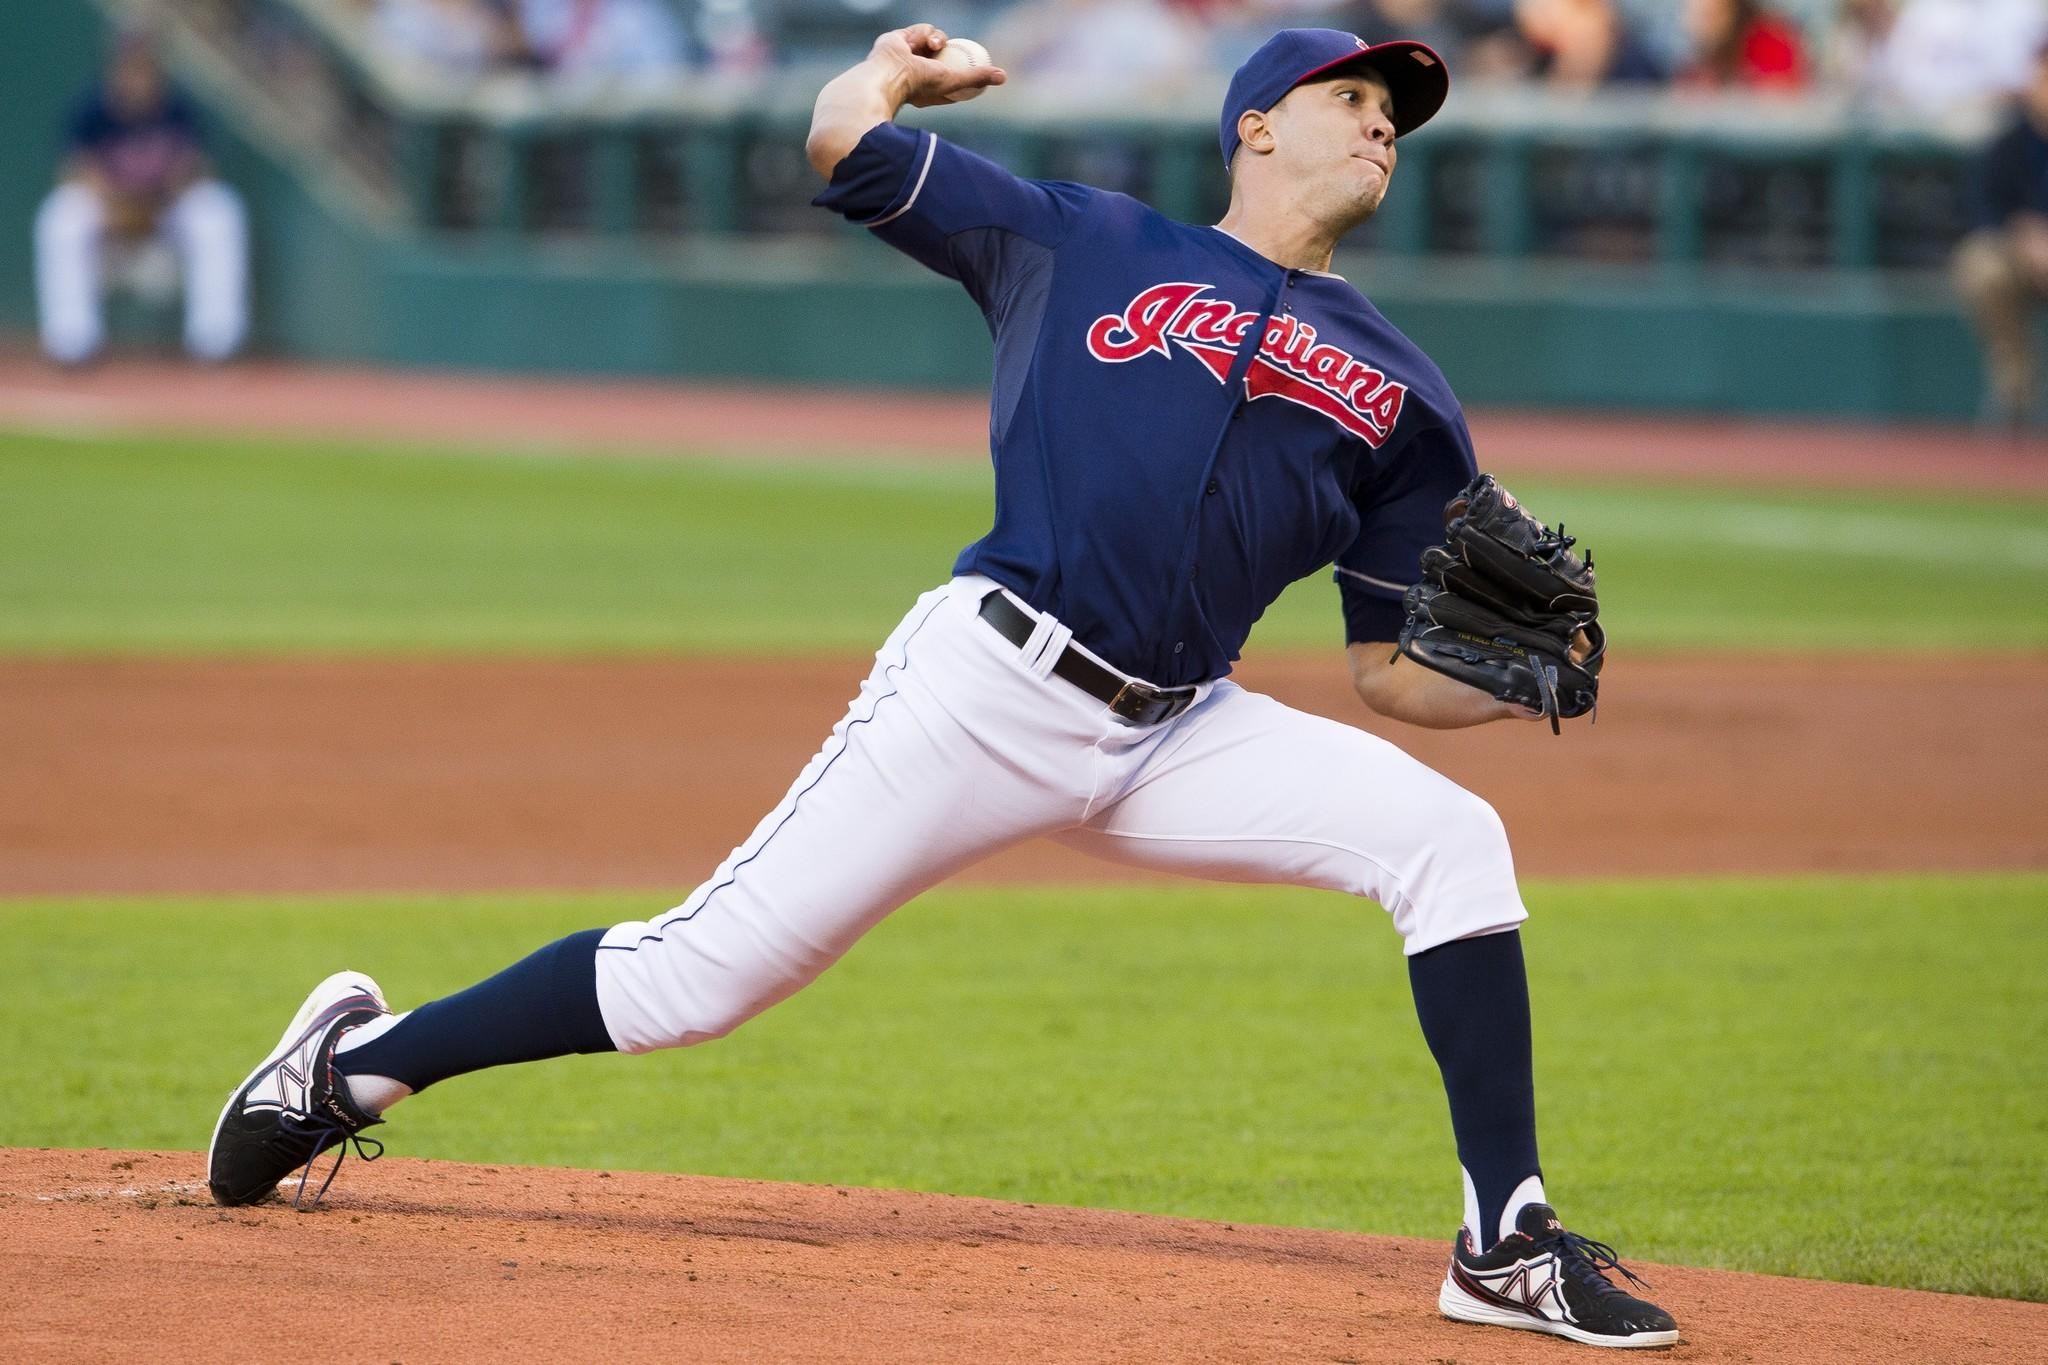 Pitcher Ubaldo Jimenez throws a pitch against the Orioles while a member of the Cleveland Indians in September.